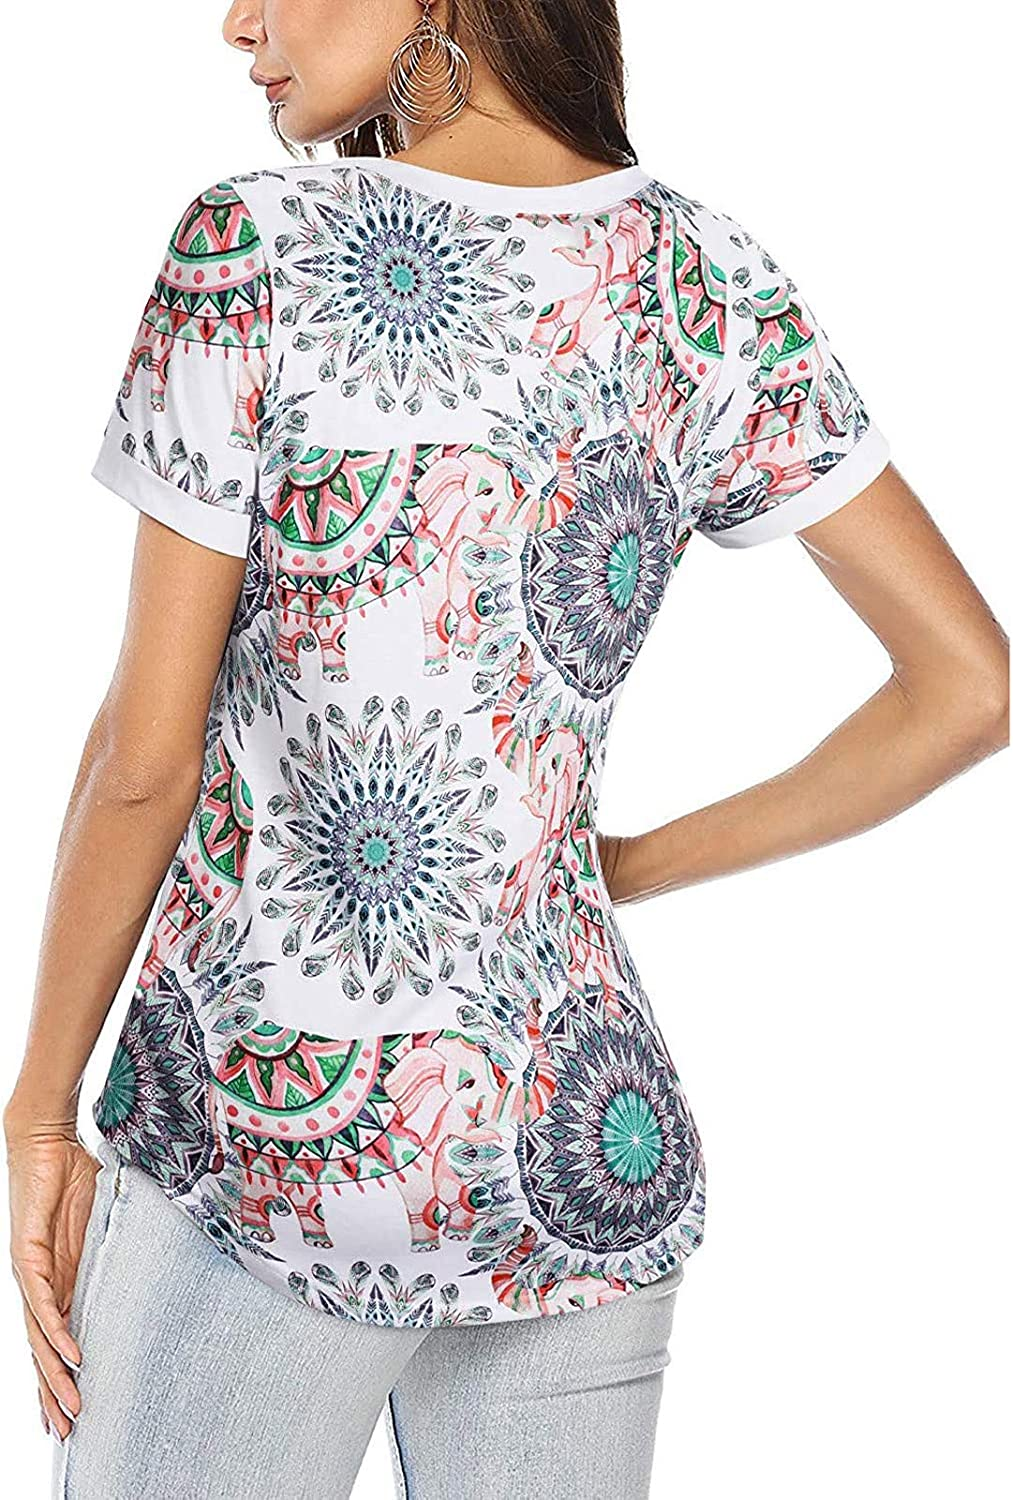 Womens T Shirt Summer Casual Tops V Neck Short Sleeve Tunic Vintage Prints Tee Blouse with Pants/Jeans/Skirts/Shorts etc